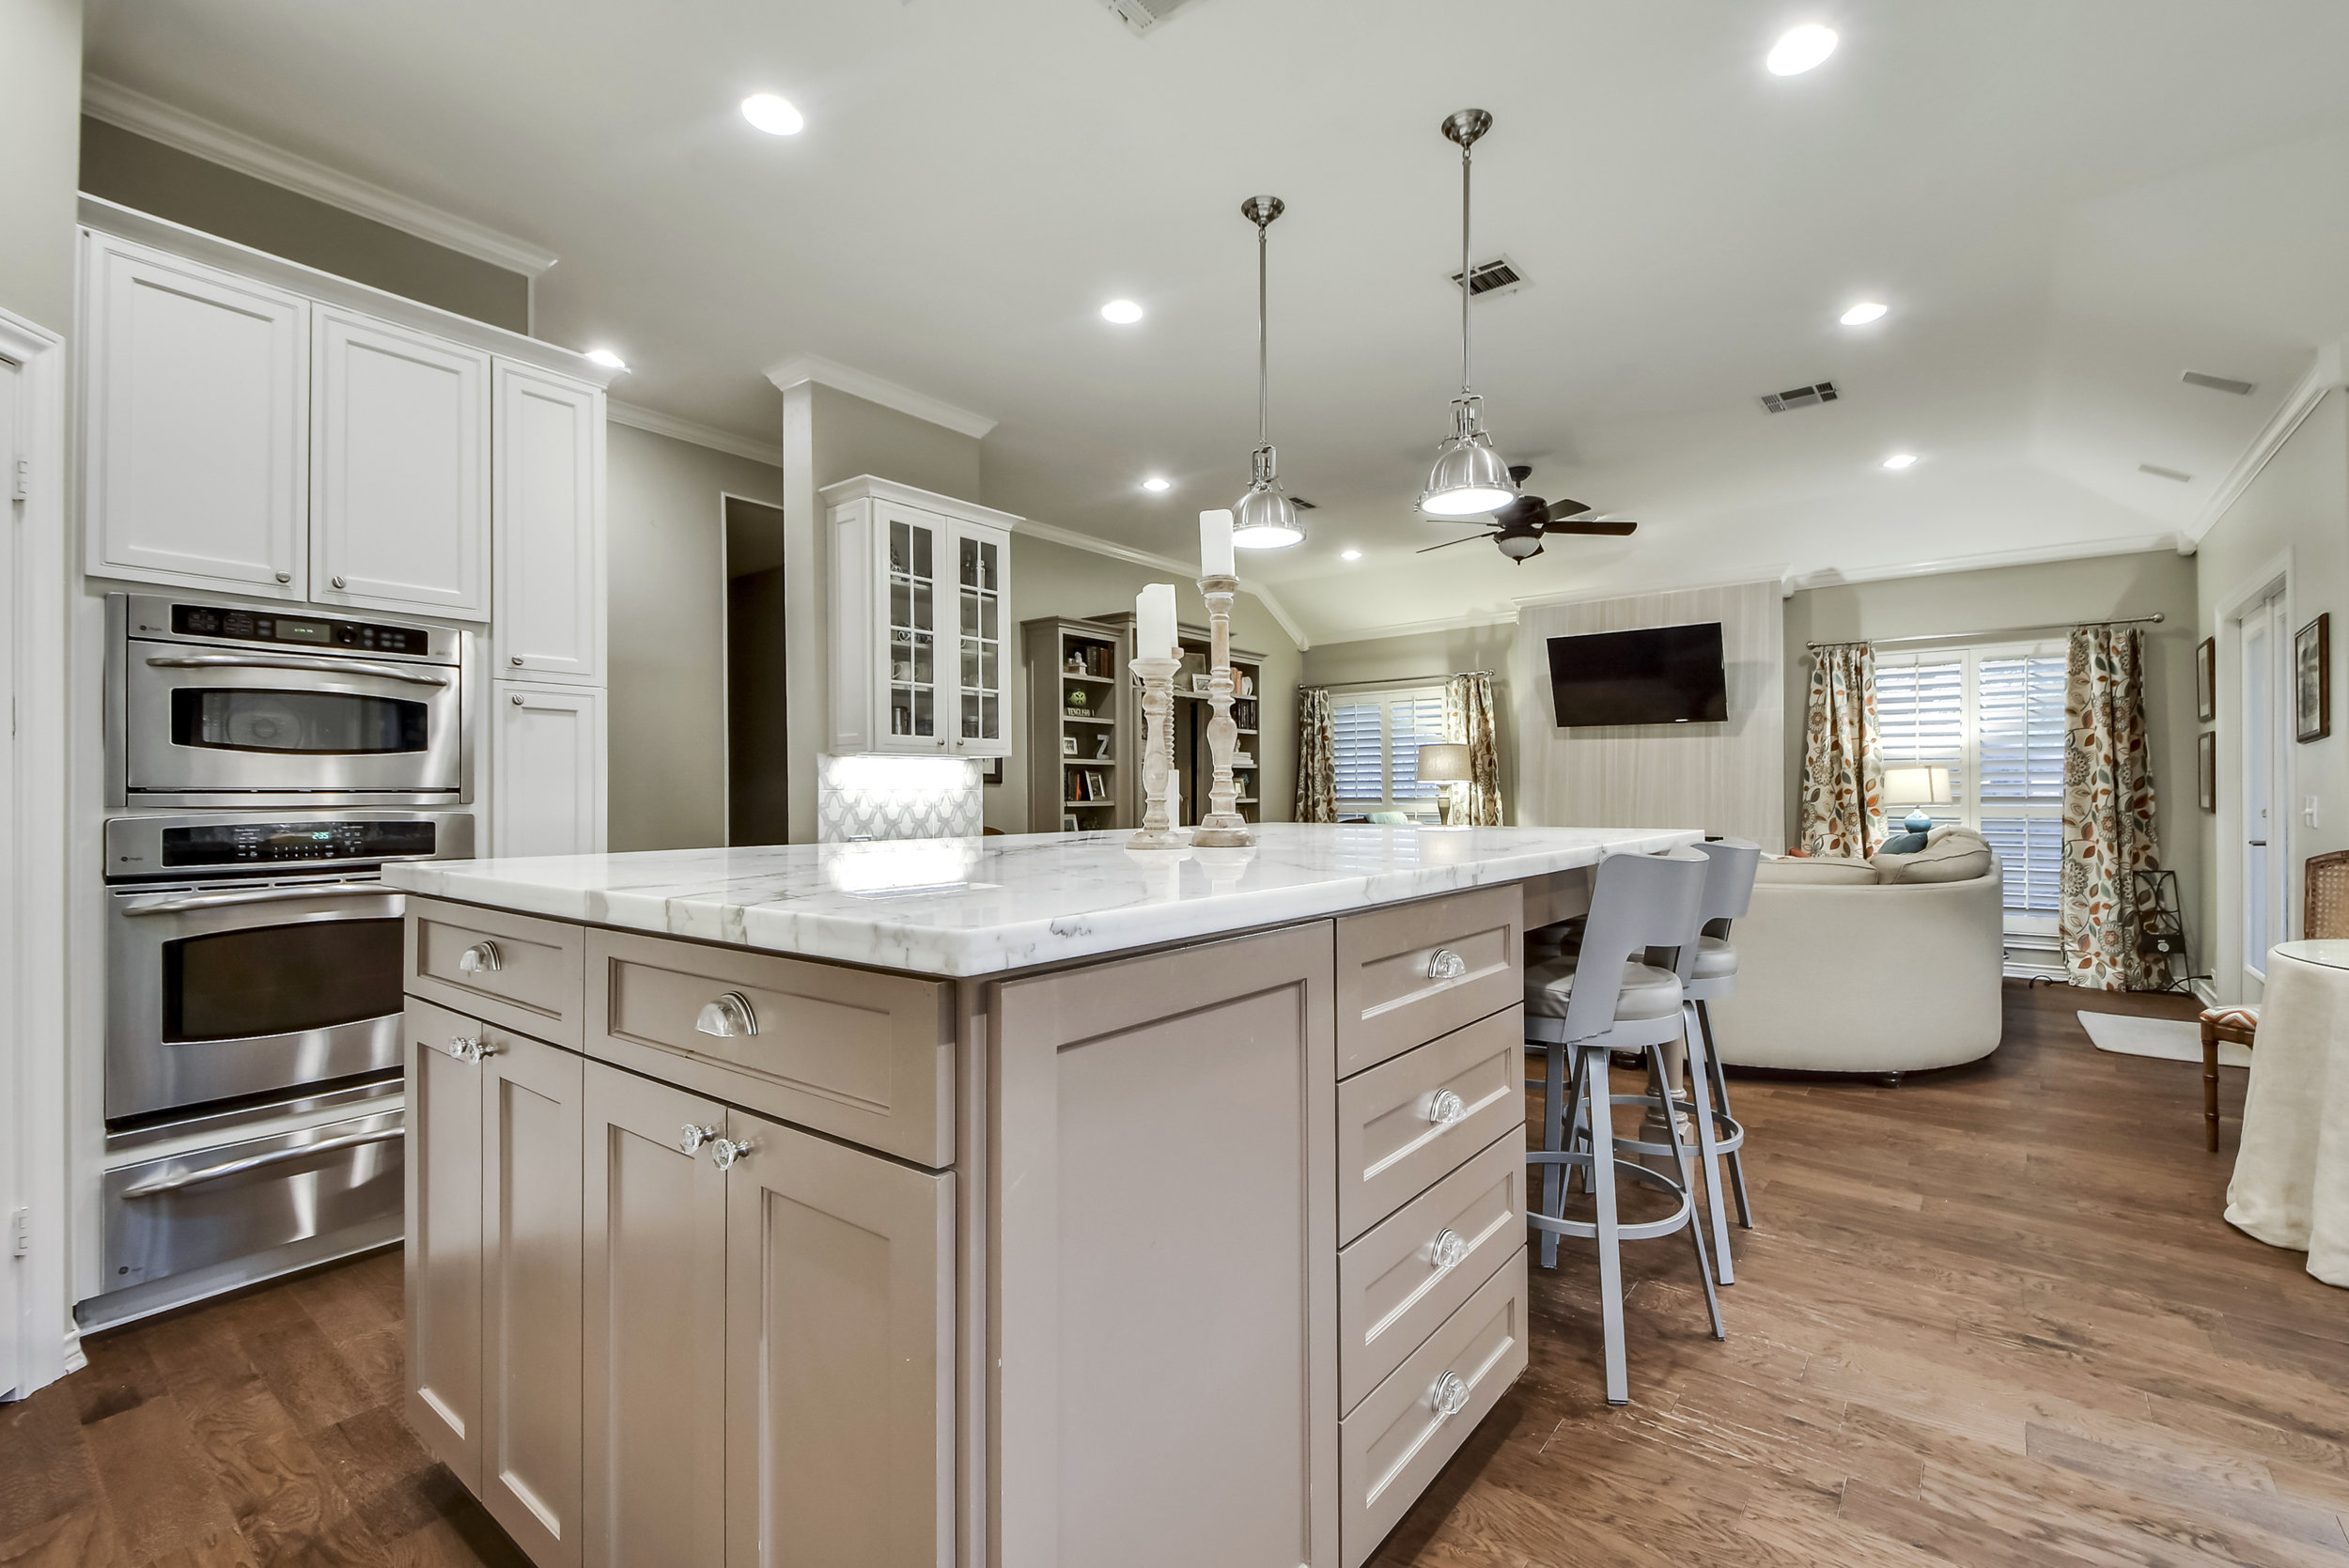 Kitchen Remodel with Marble Countertops Austin Texas